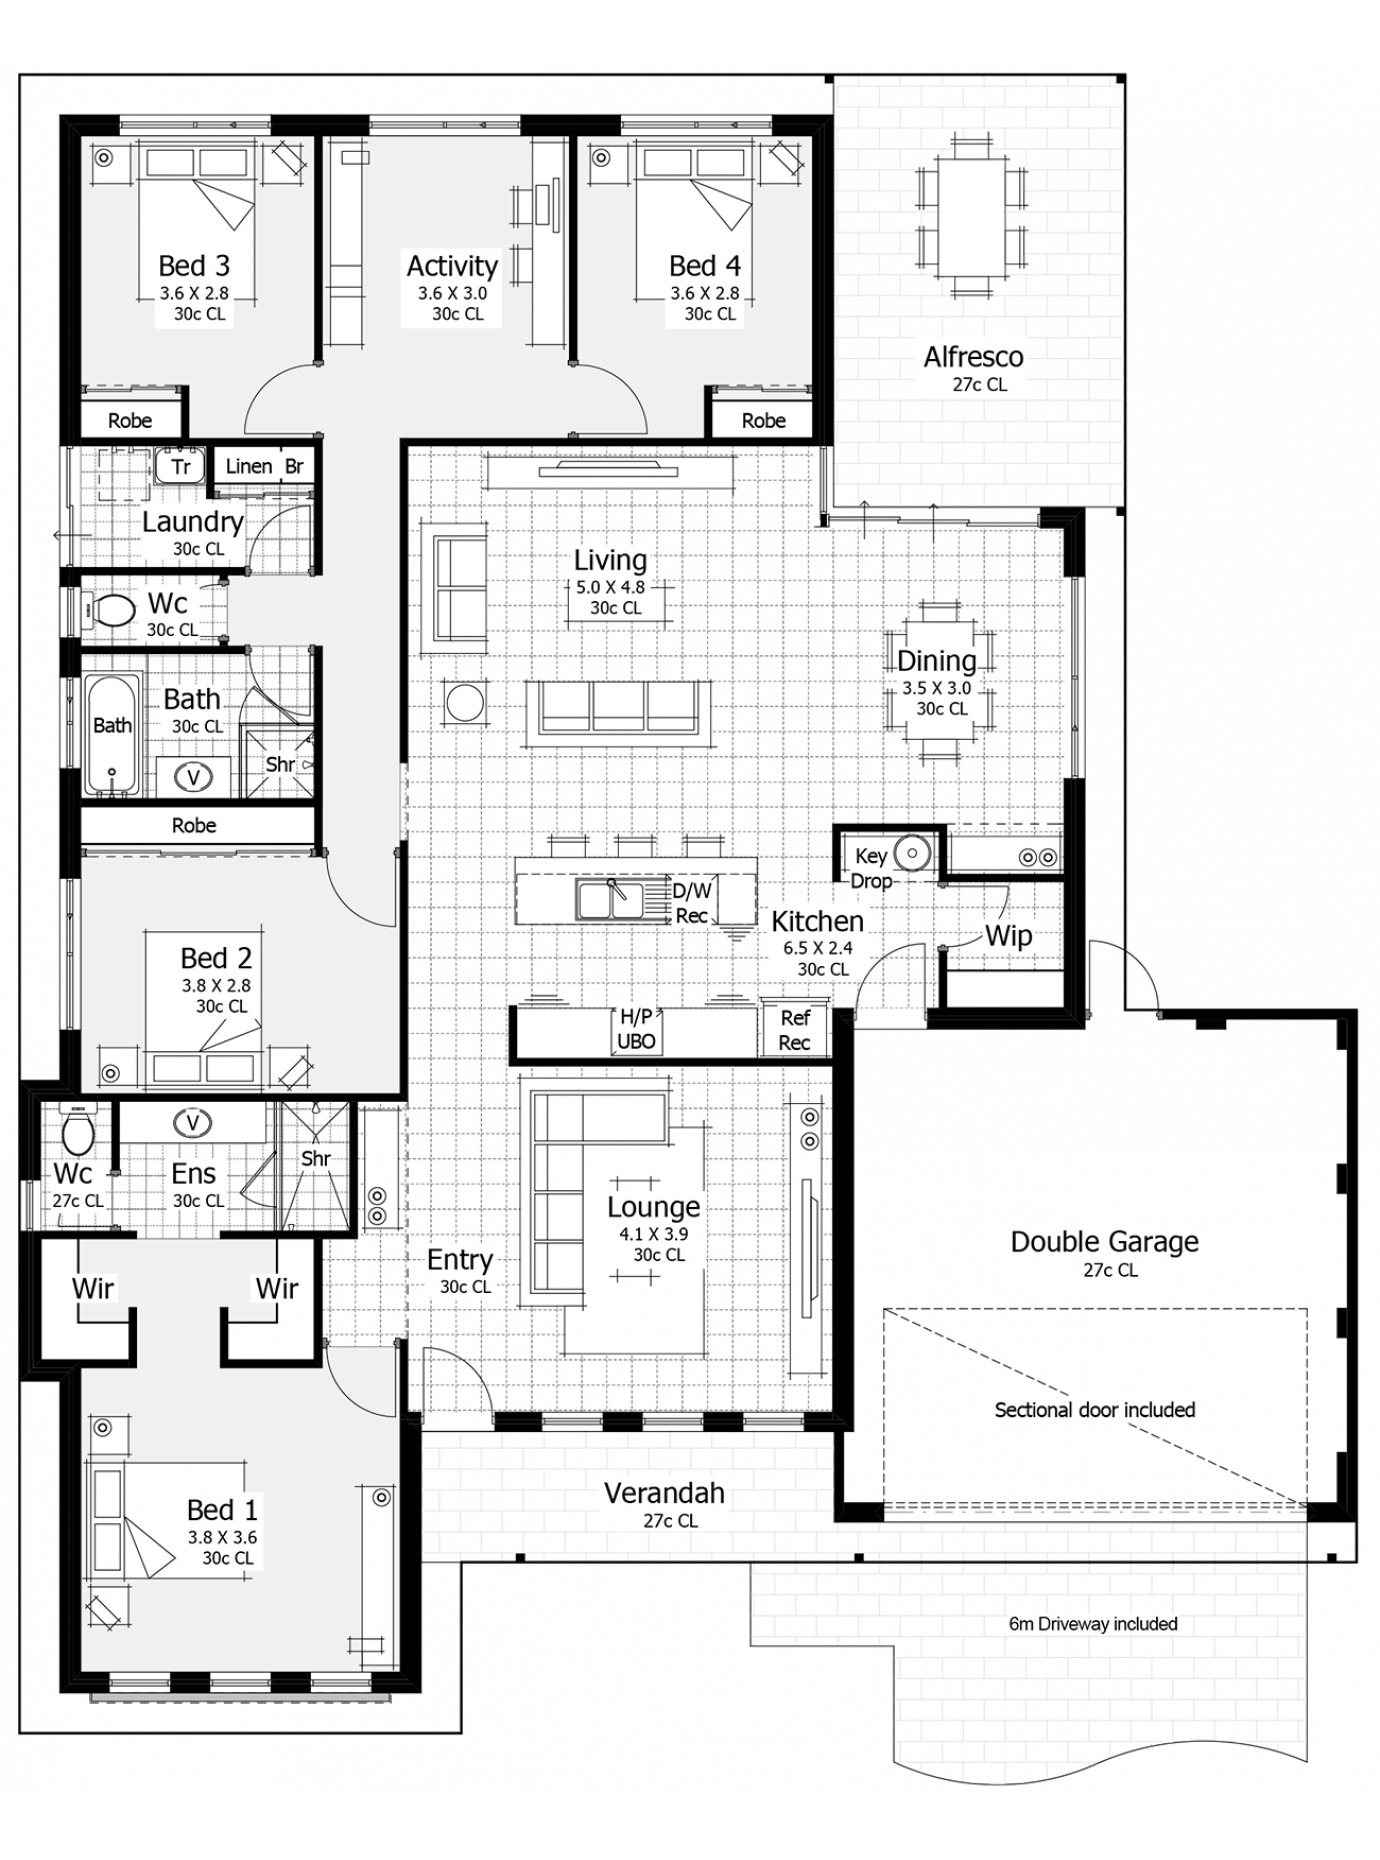 Decorating Small Open Floor Plan Living Room And Kitchen: Floor Plan Friday: Master At Front, Key Drop Area, Open Plan